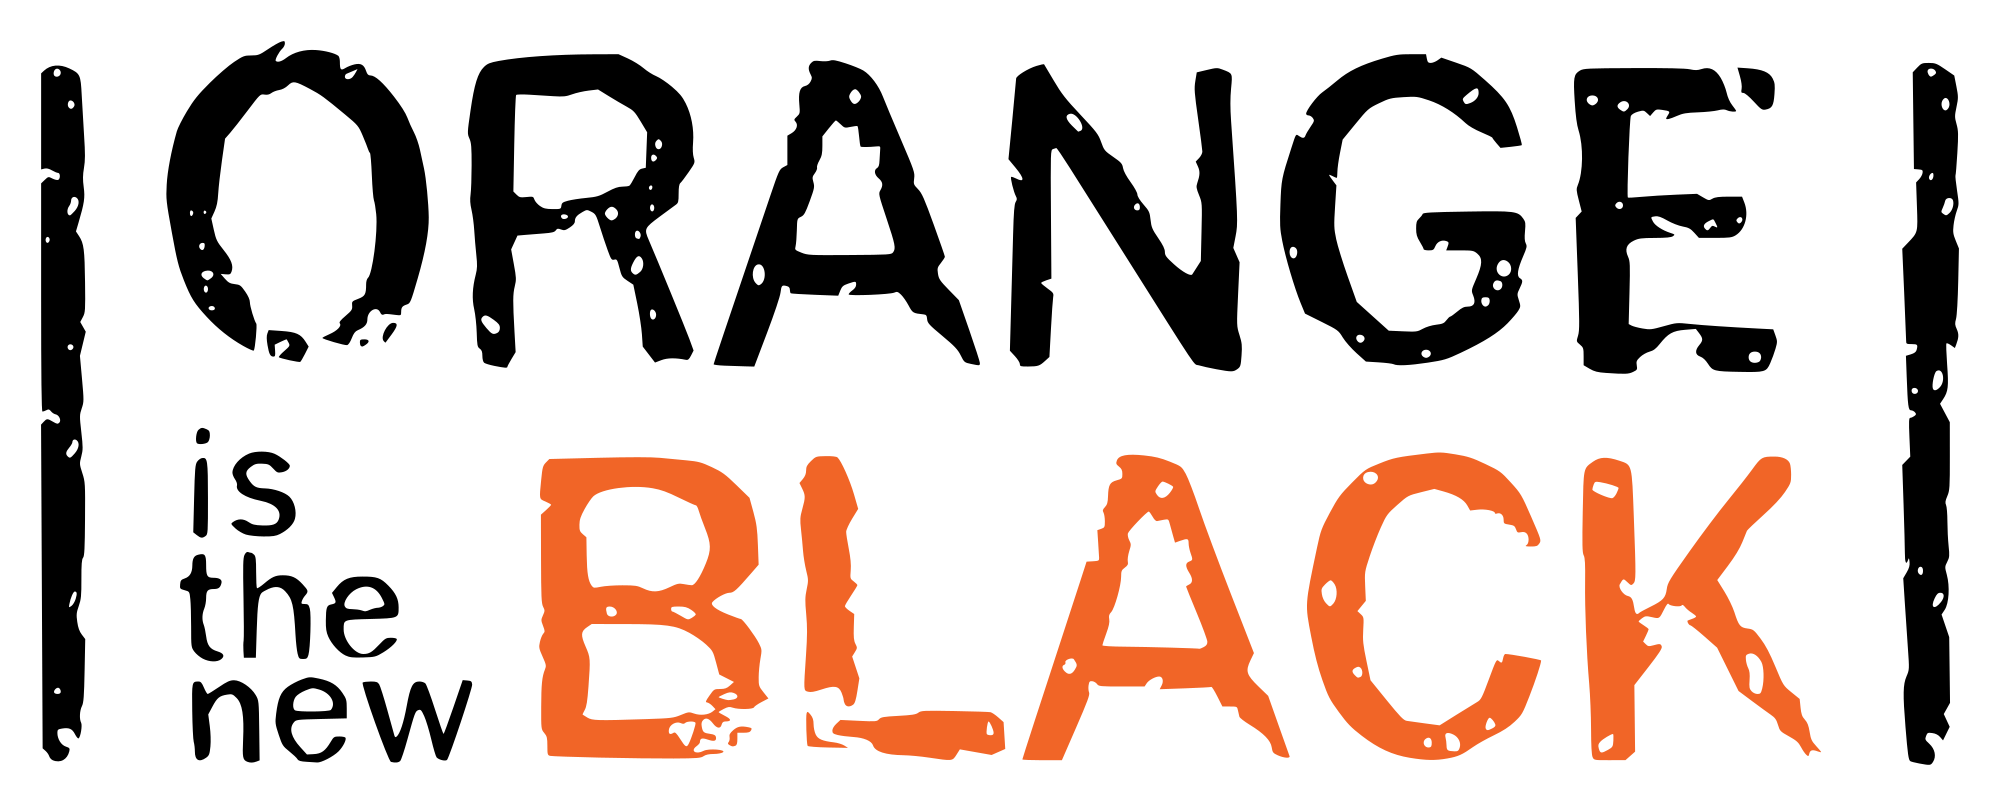 orange is the new black logo png